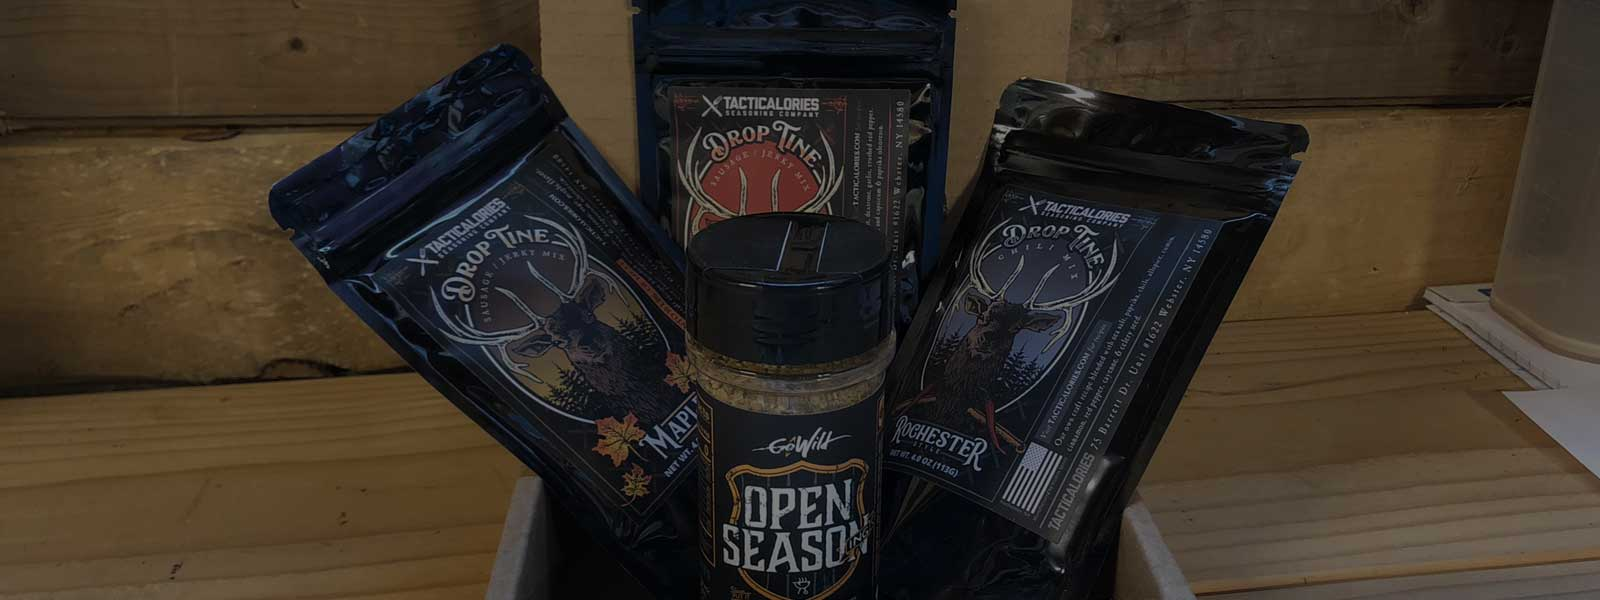 Giveaway: 3 Winners for Tacticalories Seasoning